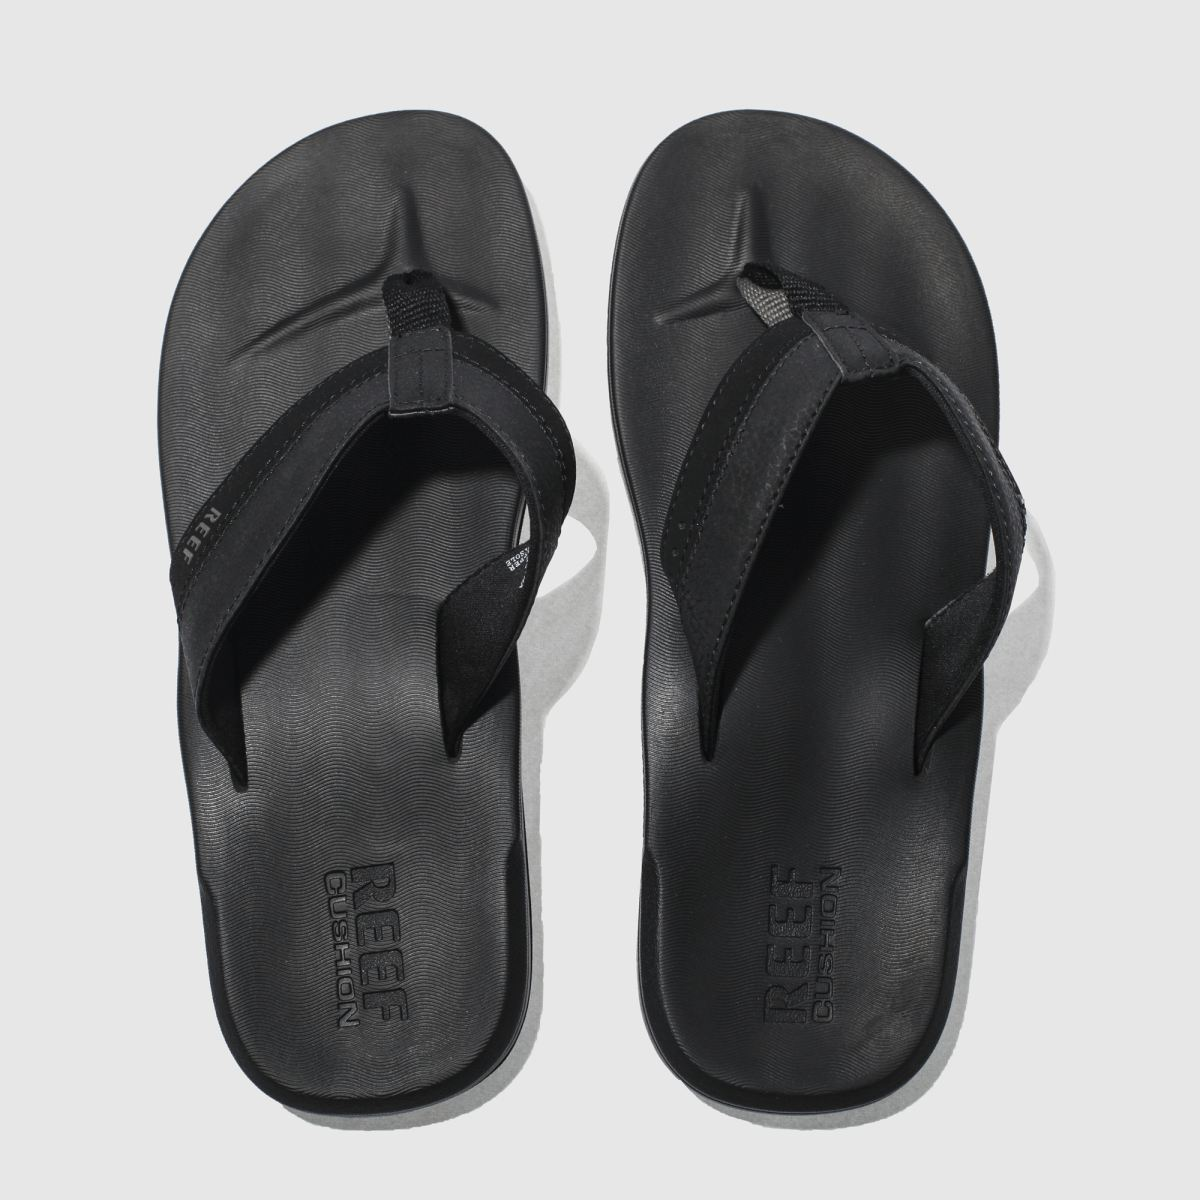 Reef Black Contoured Cushion Sandals